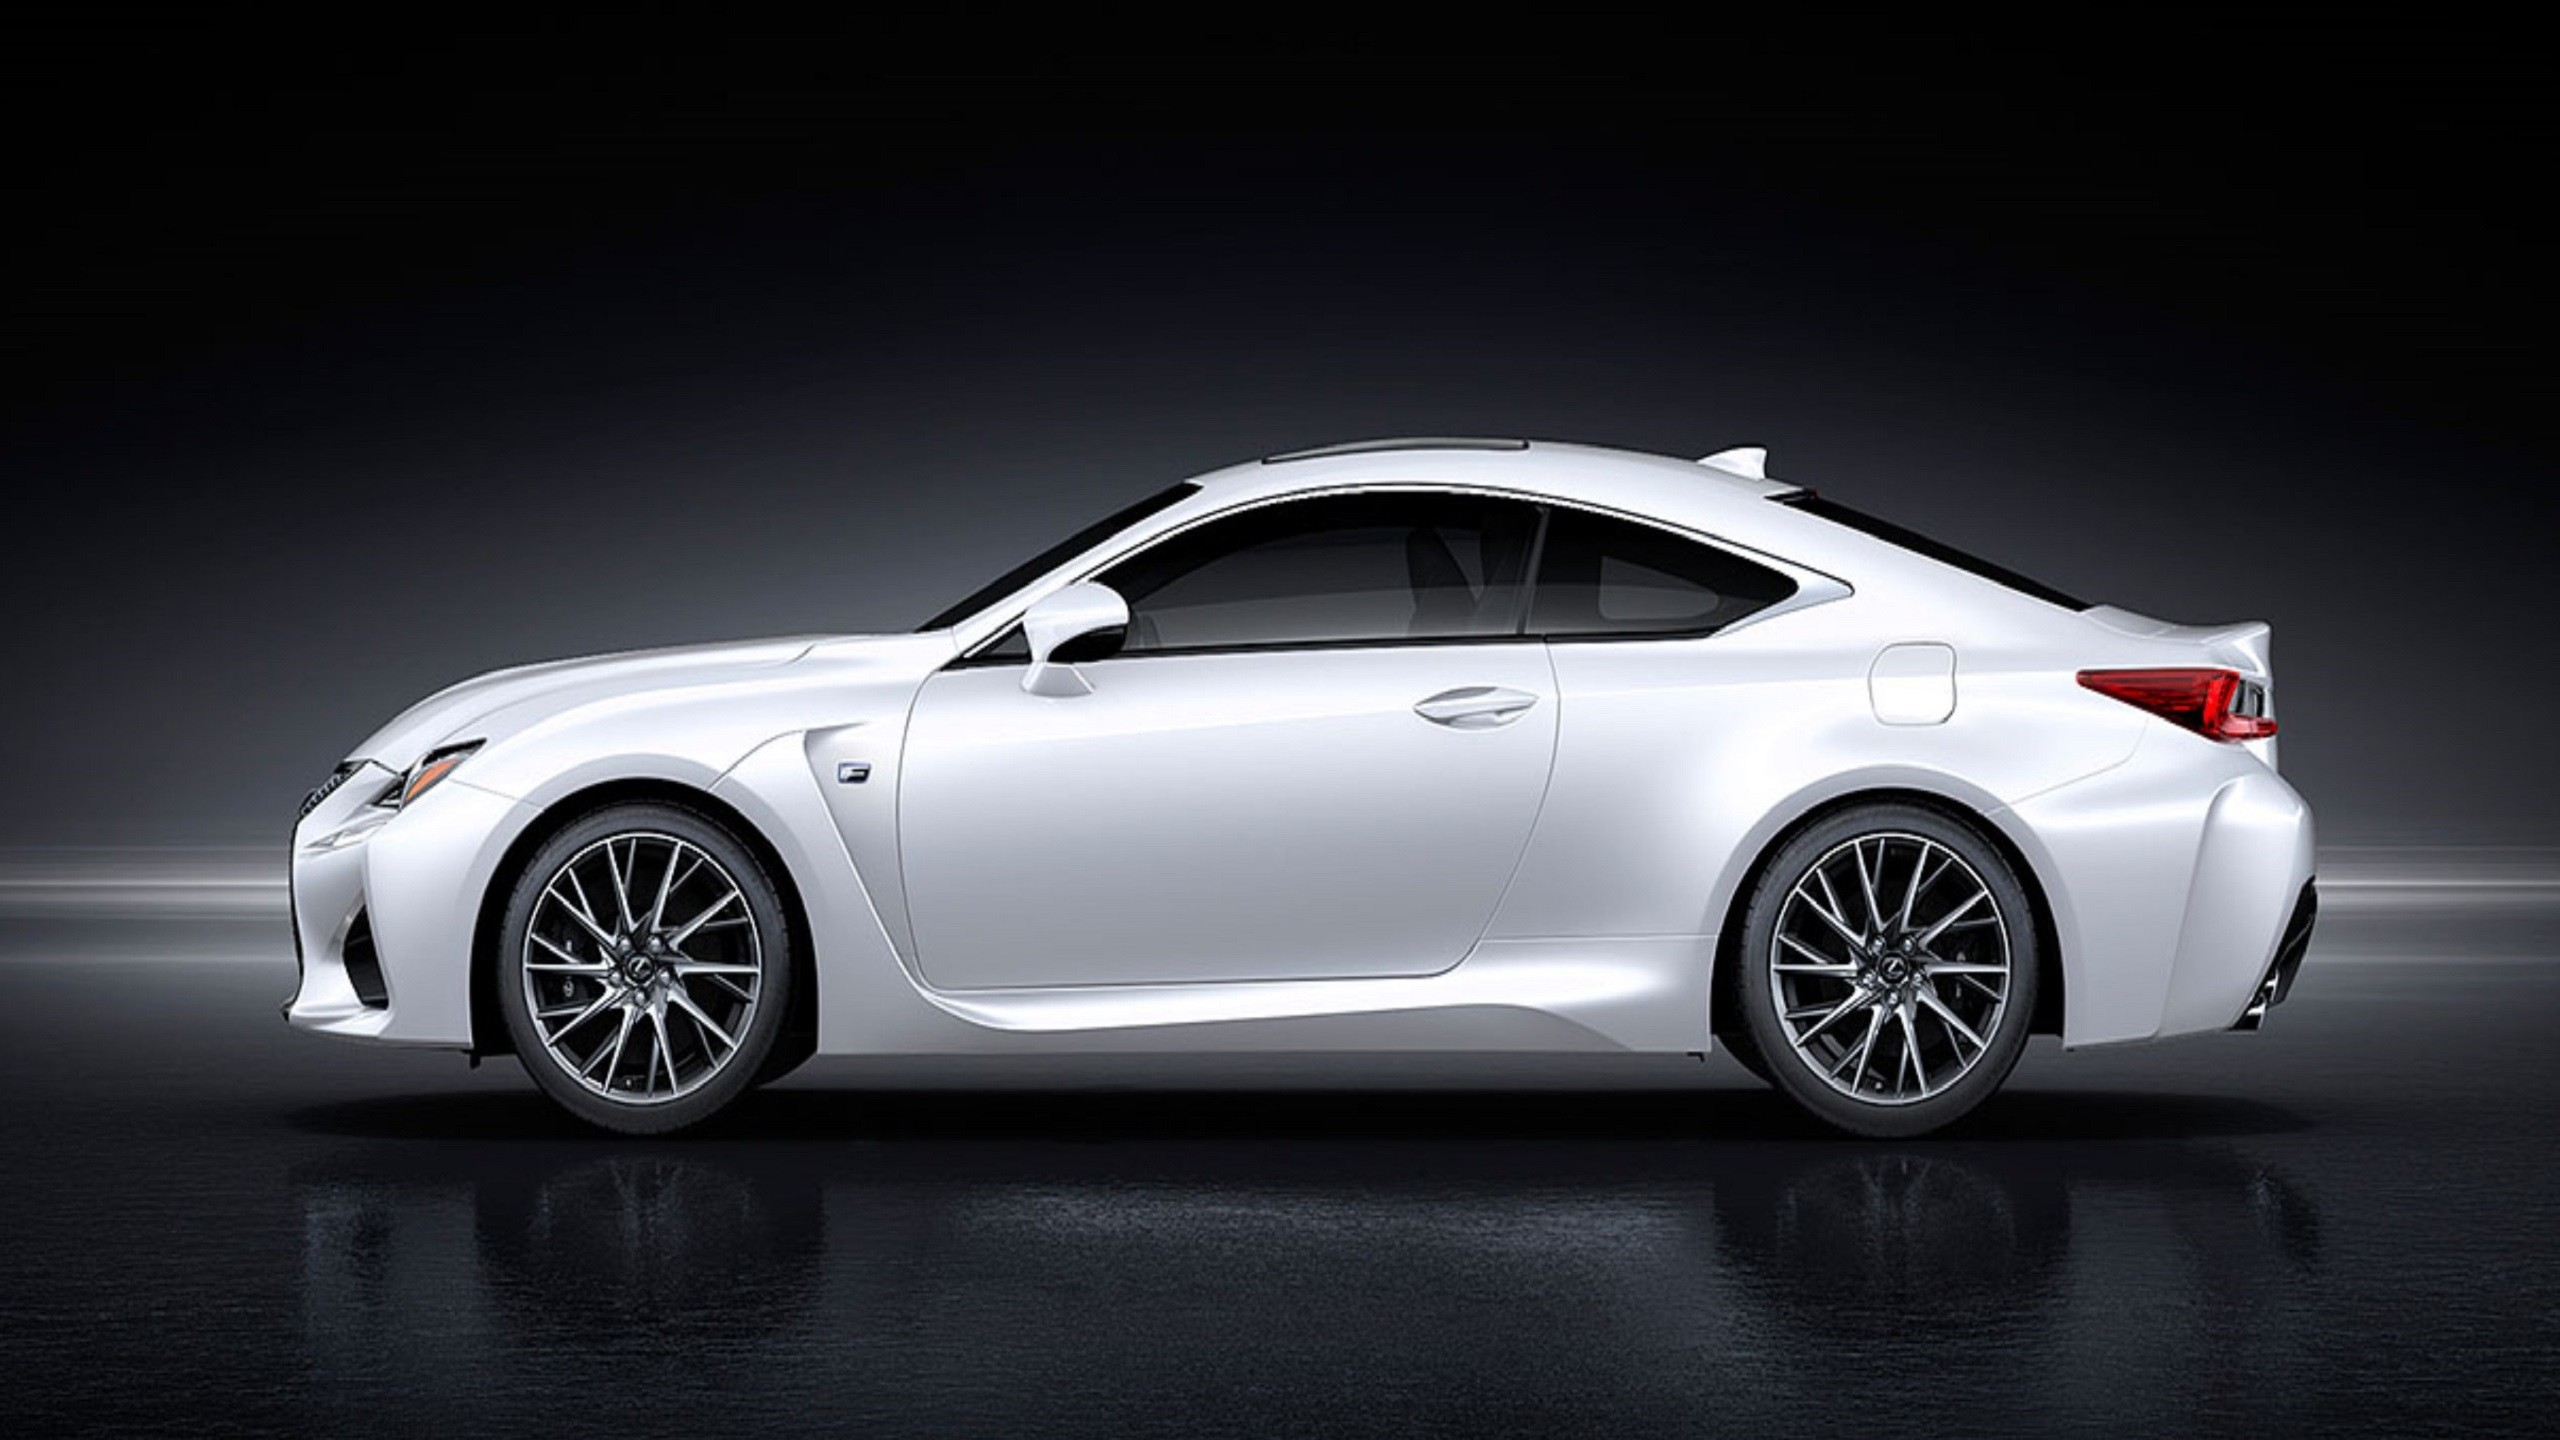 2015 Lexus RC Coupe HD Wallpaper HDwallpaperUP 2560x1440